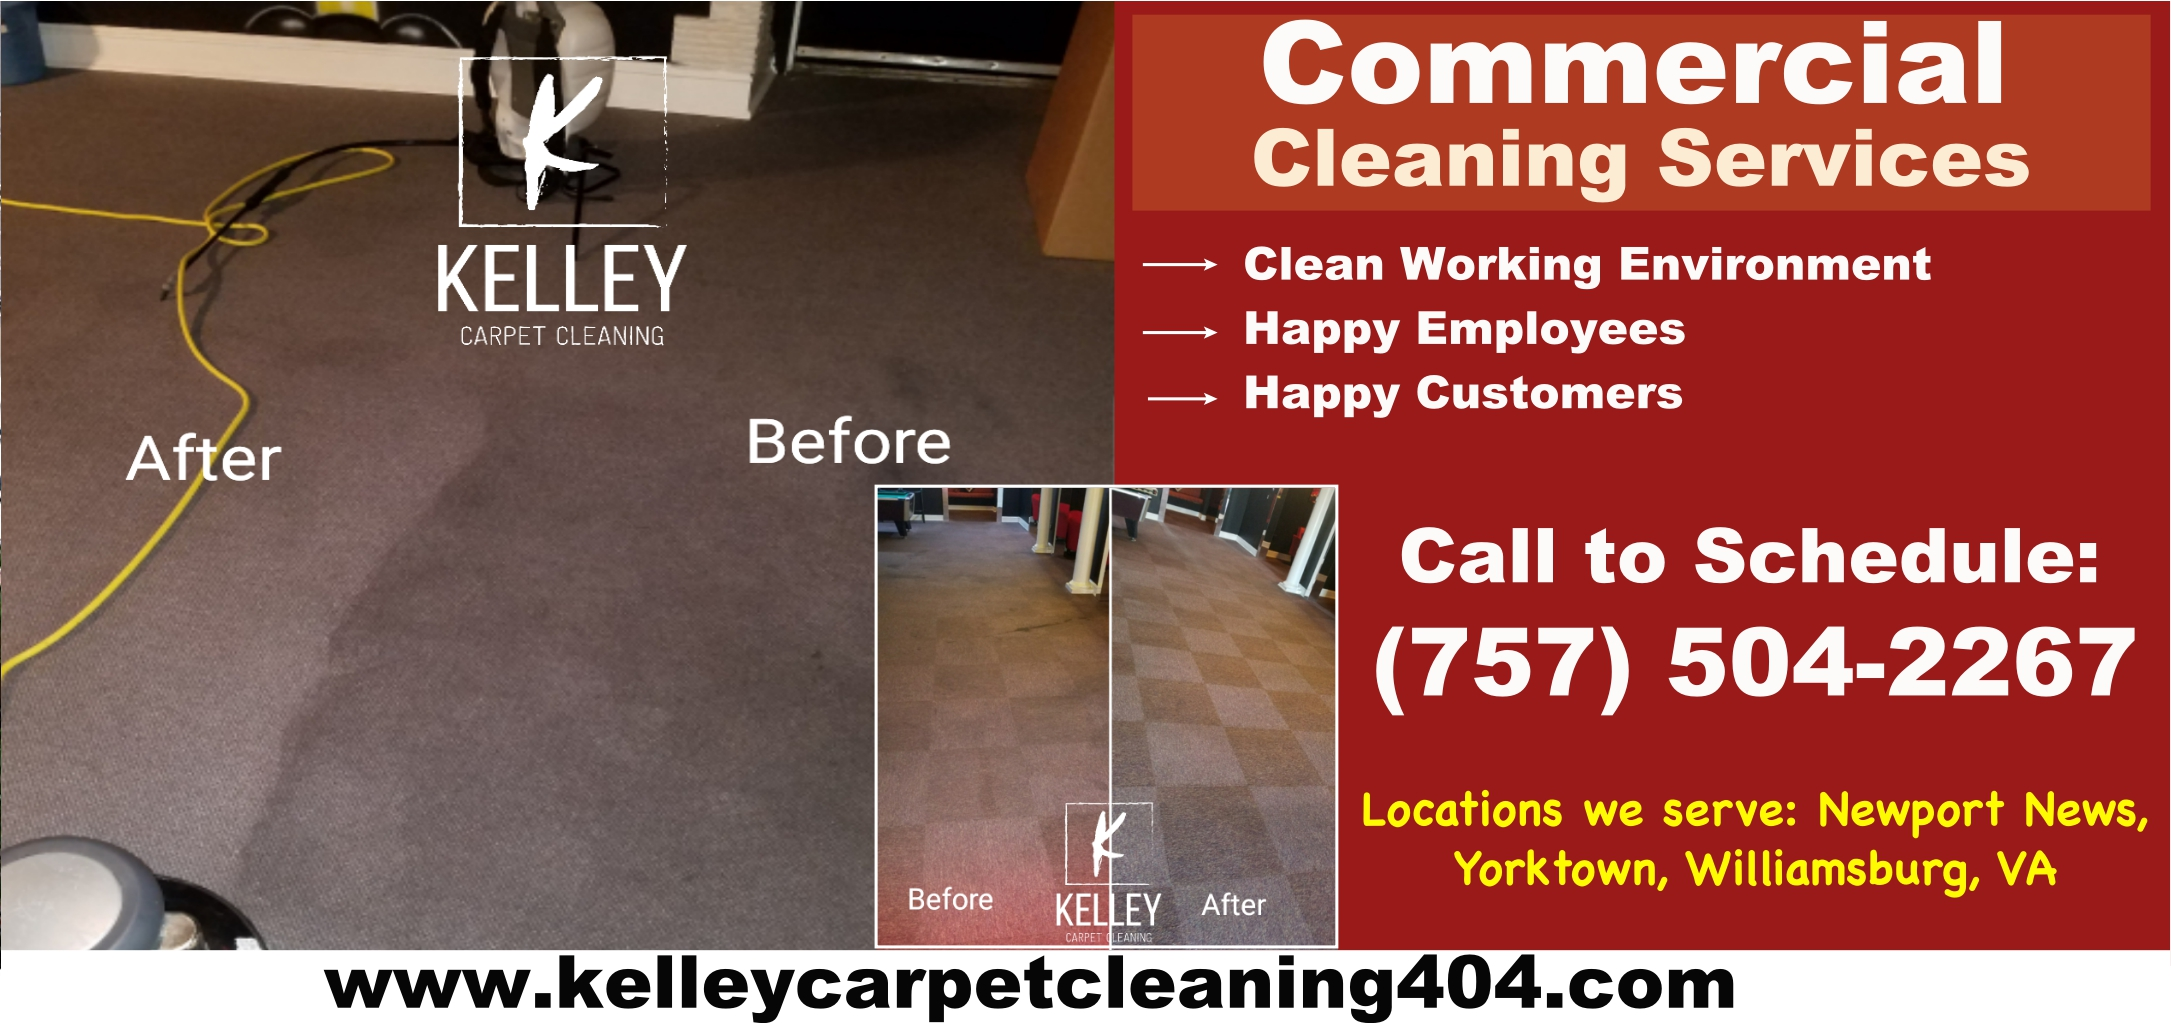 Commercial Carpet Cleaning Newport News